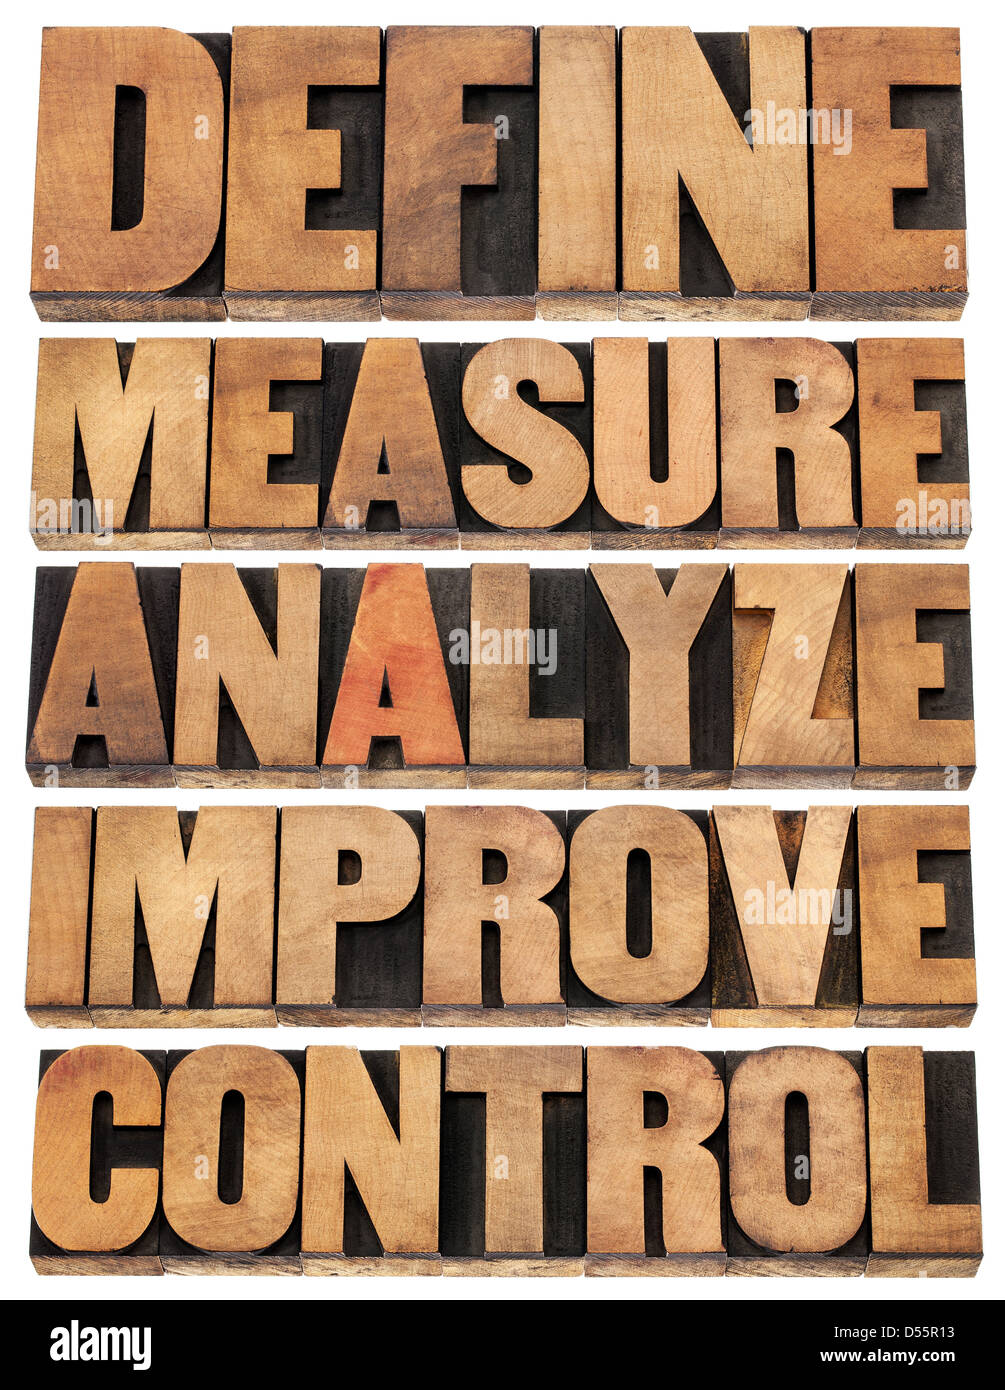 define, measure, analyze, improve, control - concept of continuous improvement process or cycle - Stock Image